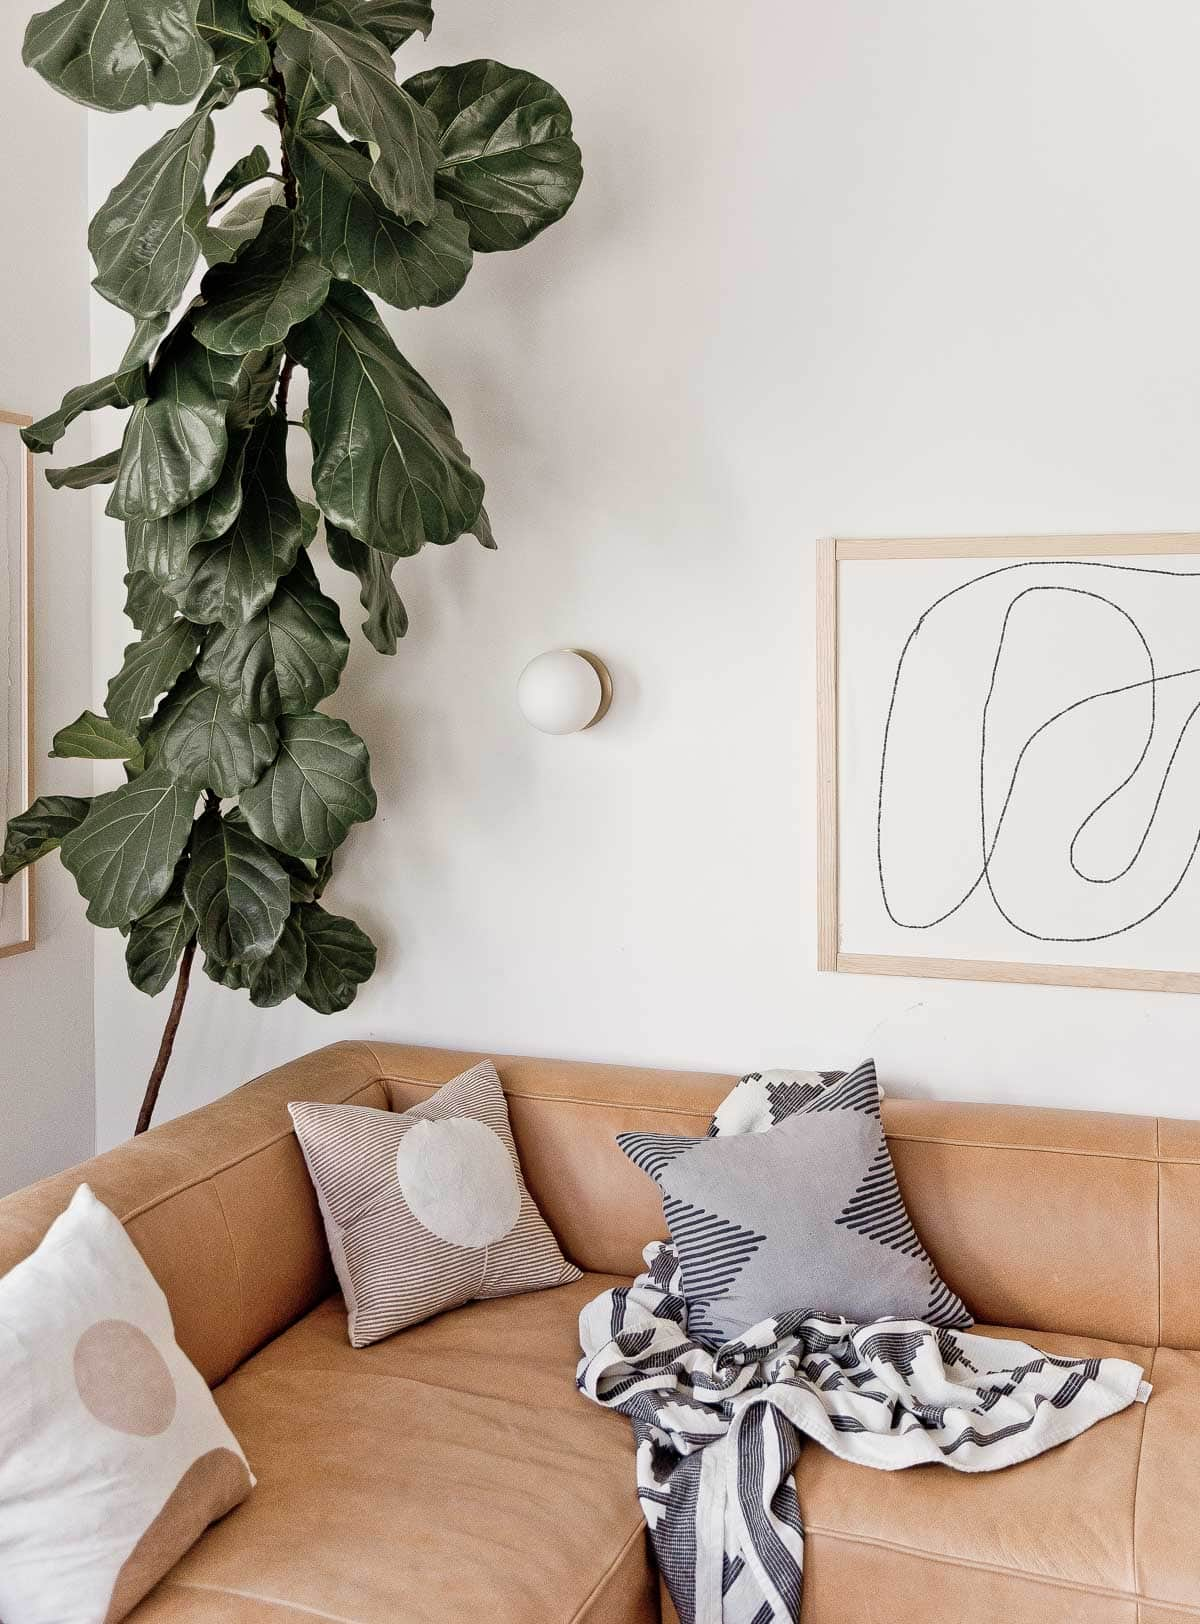 Abstract black and white line drawing hanging in modern living room.